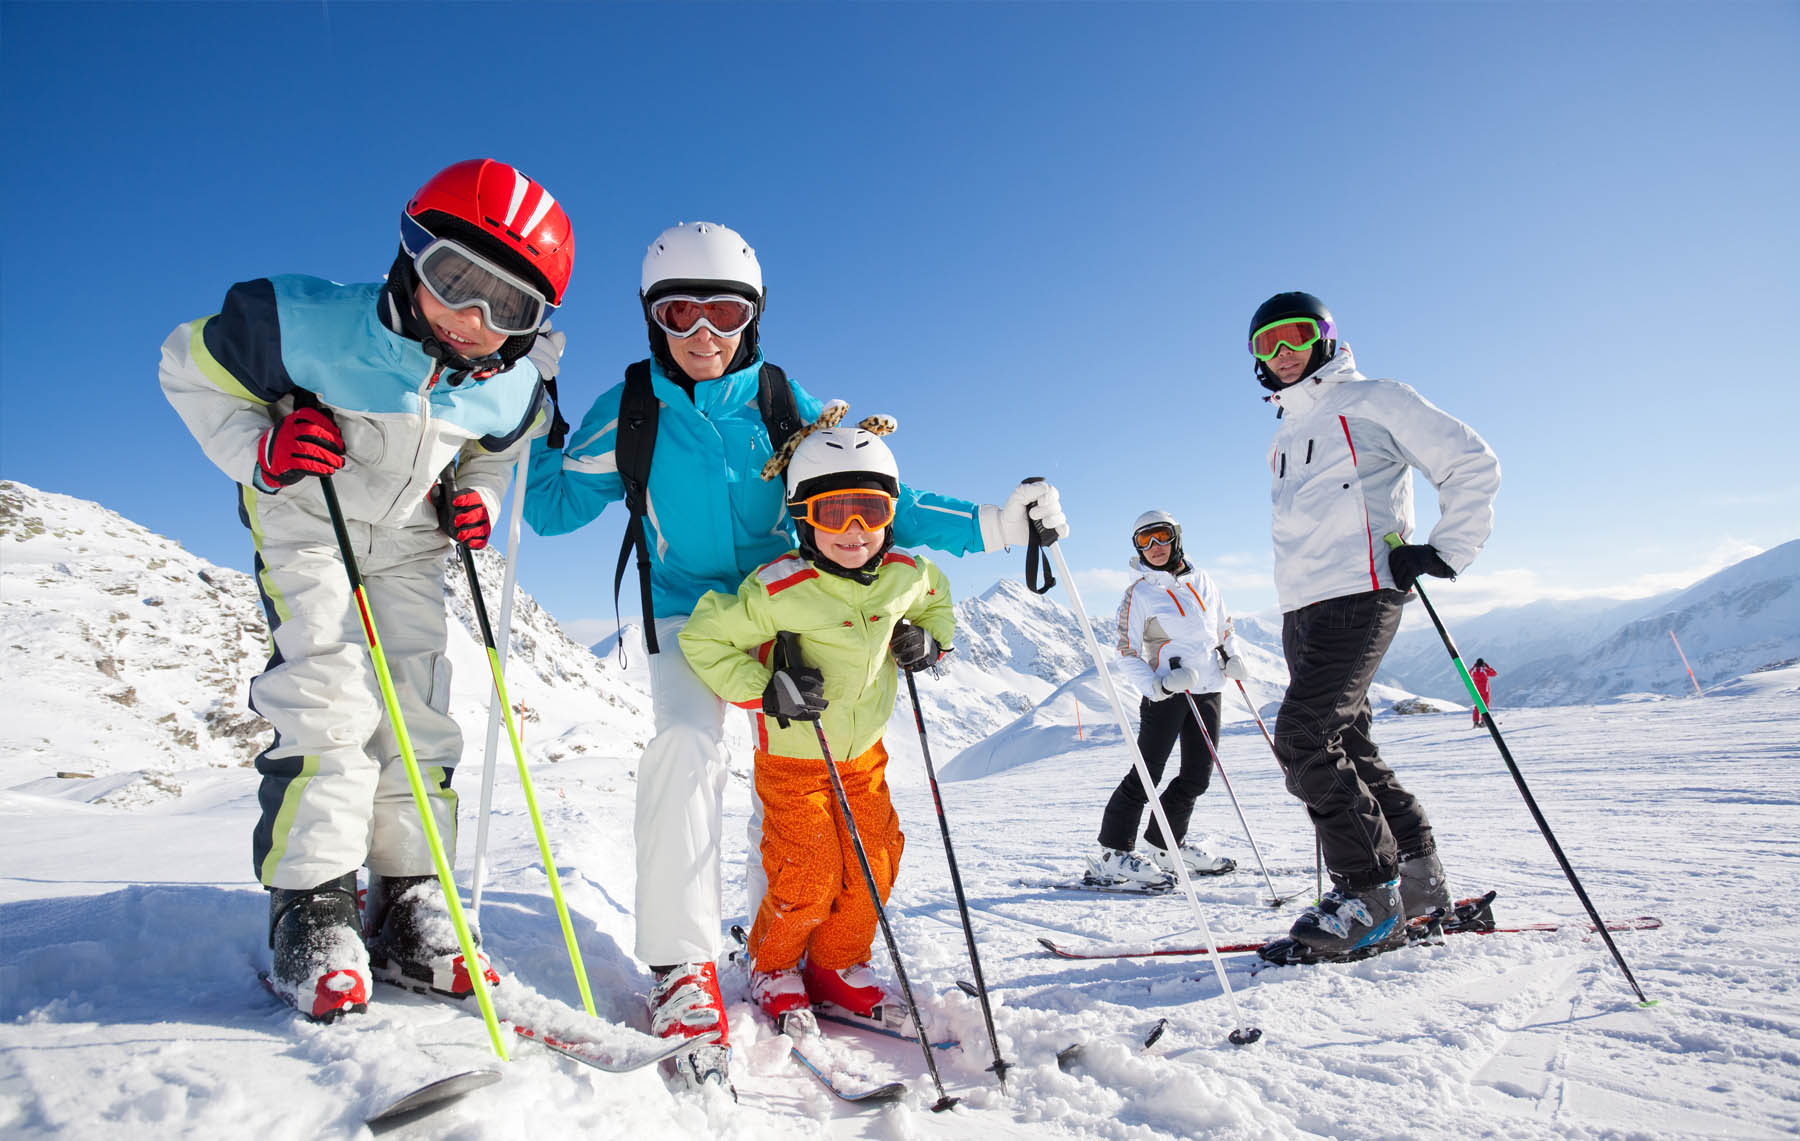 Image newsfeed 5 days skiing with family or friends